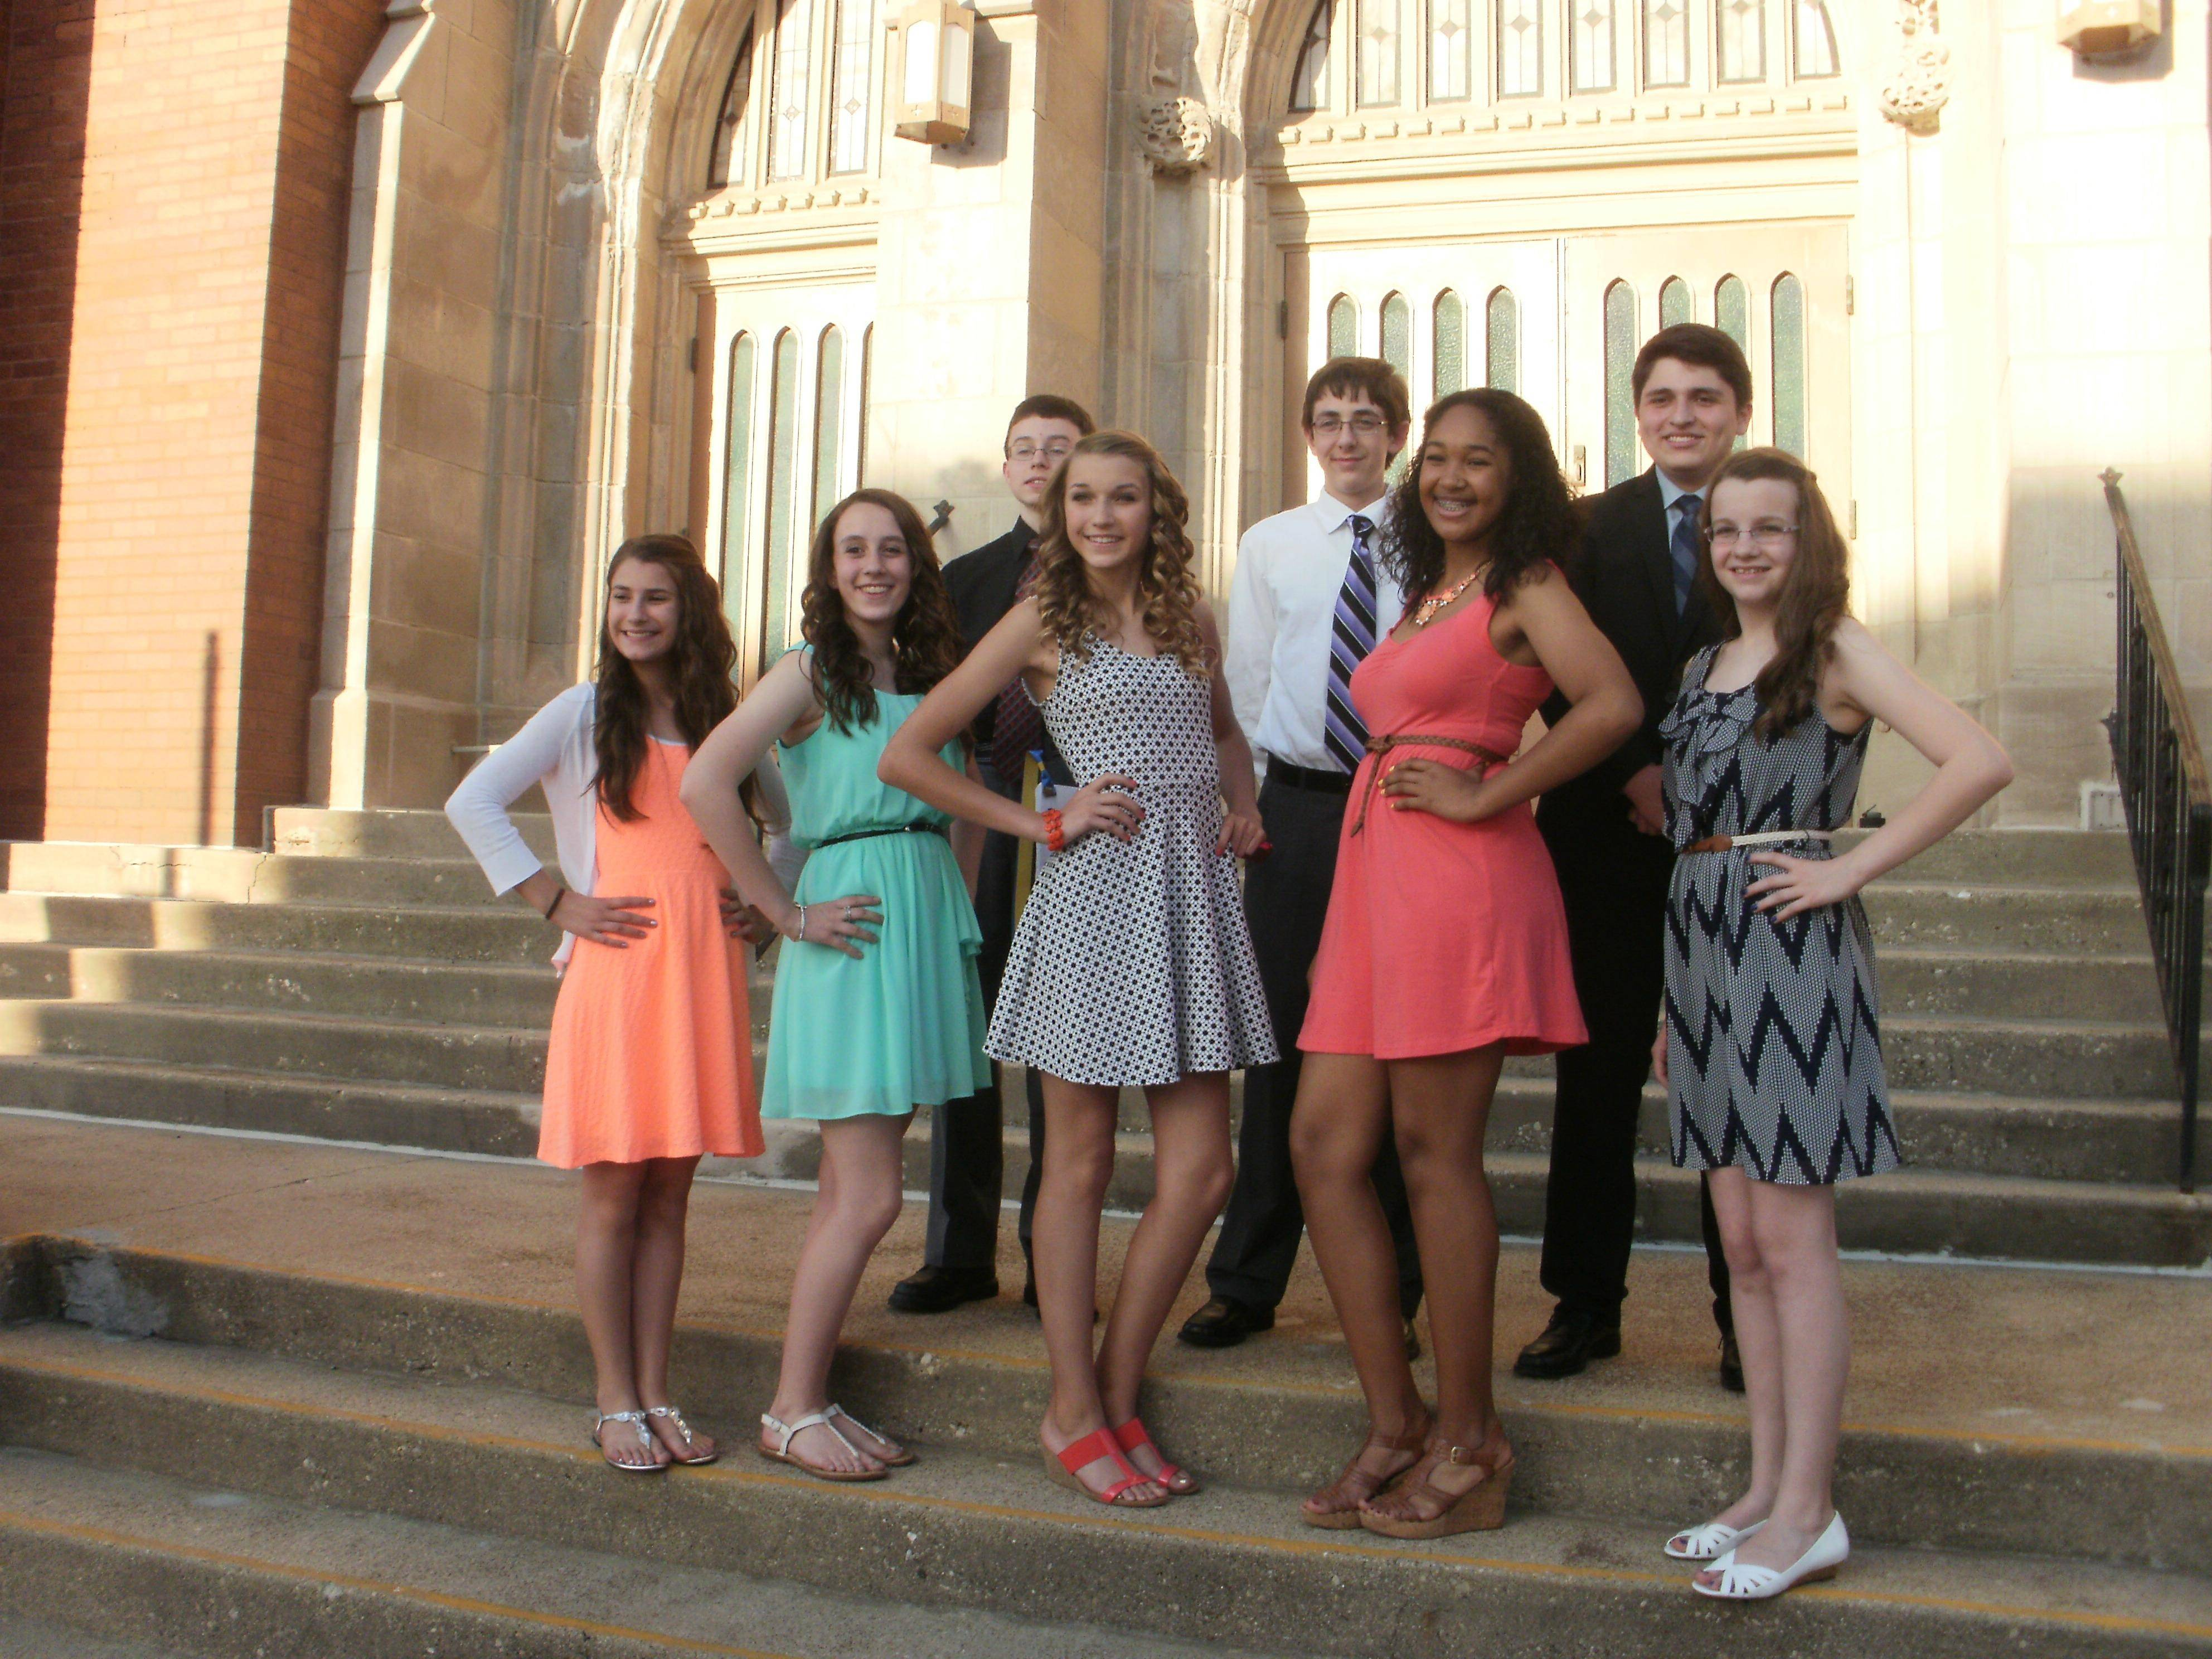 The eighth-grade class of St. John Lutheran School in Elgin has 22 members. Eight of these students have been together since preschool and kindergarten. Pictured are front row, Lauren Nacht, Meagan MacLeod, Elaina Studt, Erika Burns and Melissa Ailes; and back row, Dietrich Versaw, Austin Kimsey and William Wehrwein.